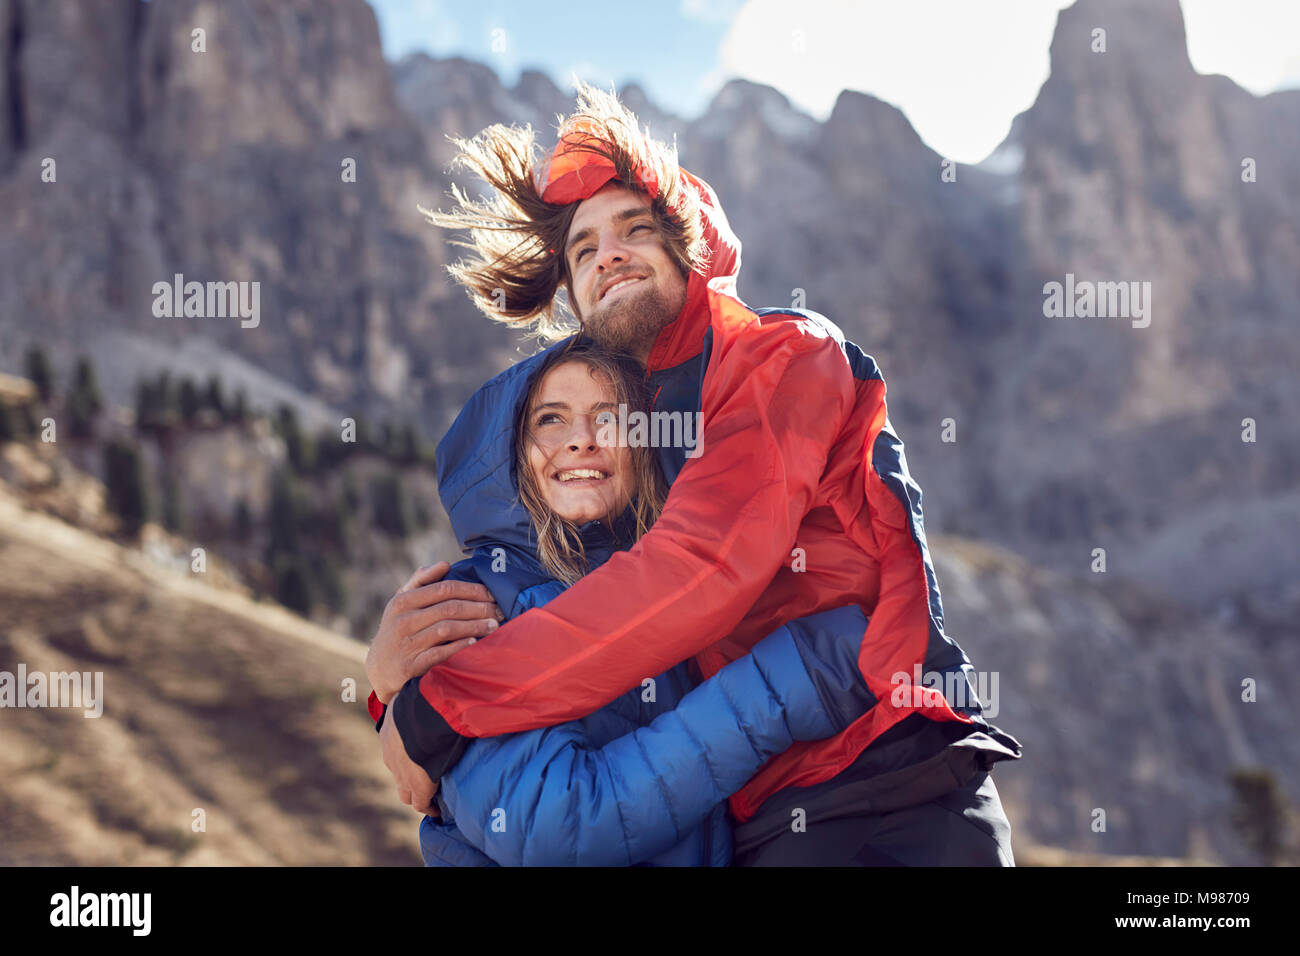 Happy young couple hugging in montagnes venteuses Photo Stock